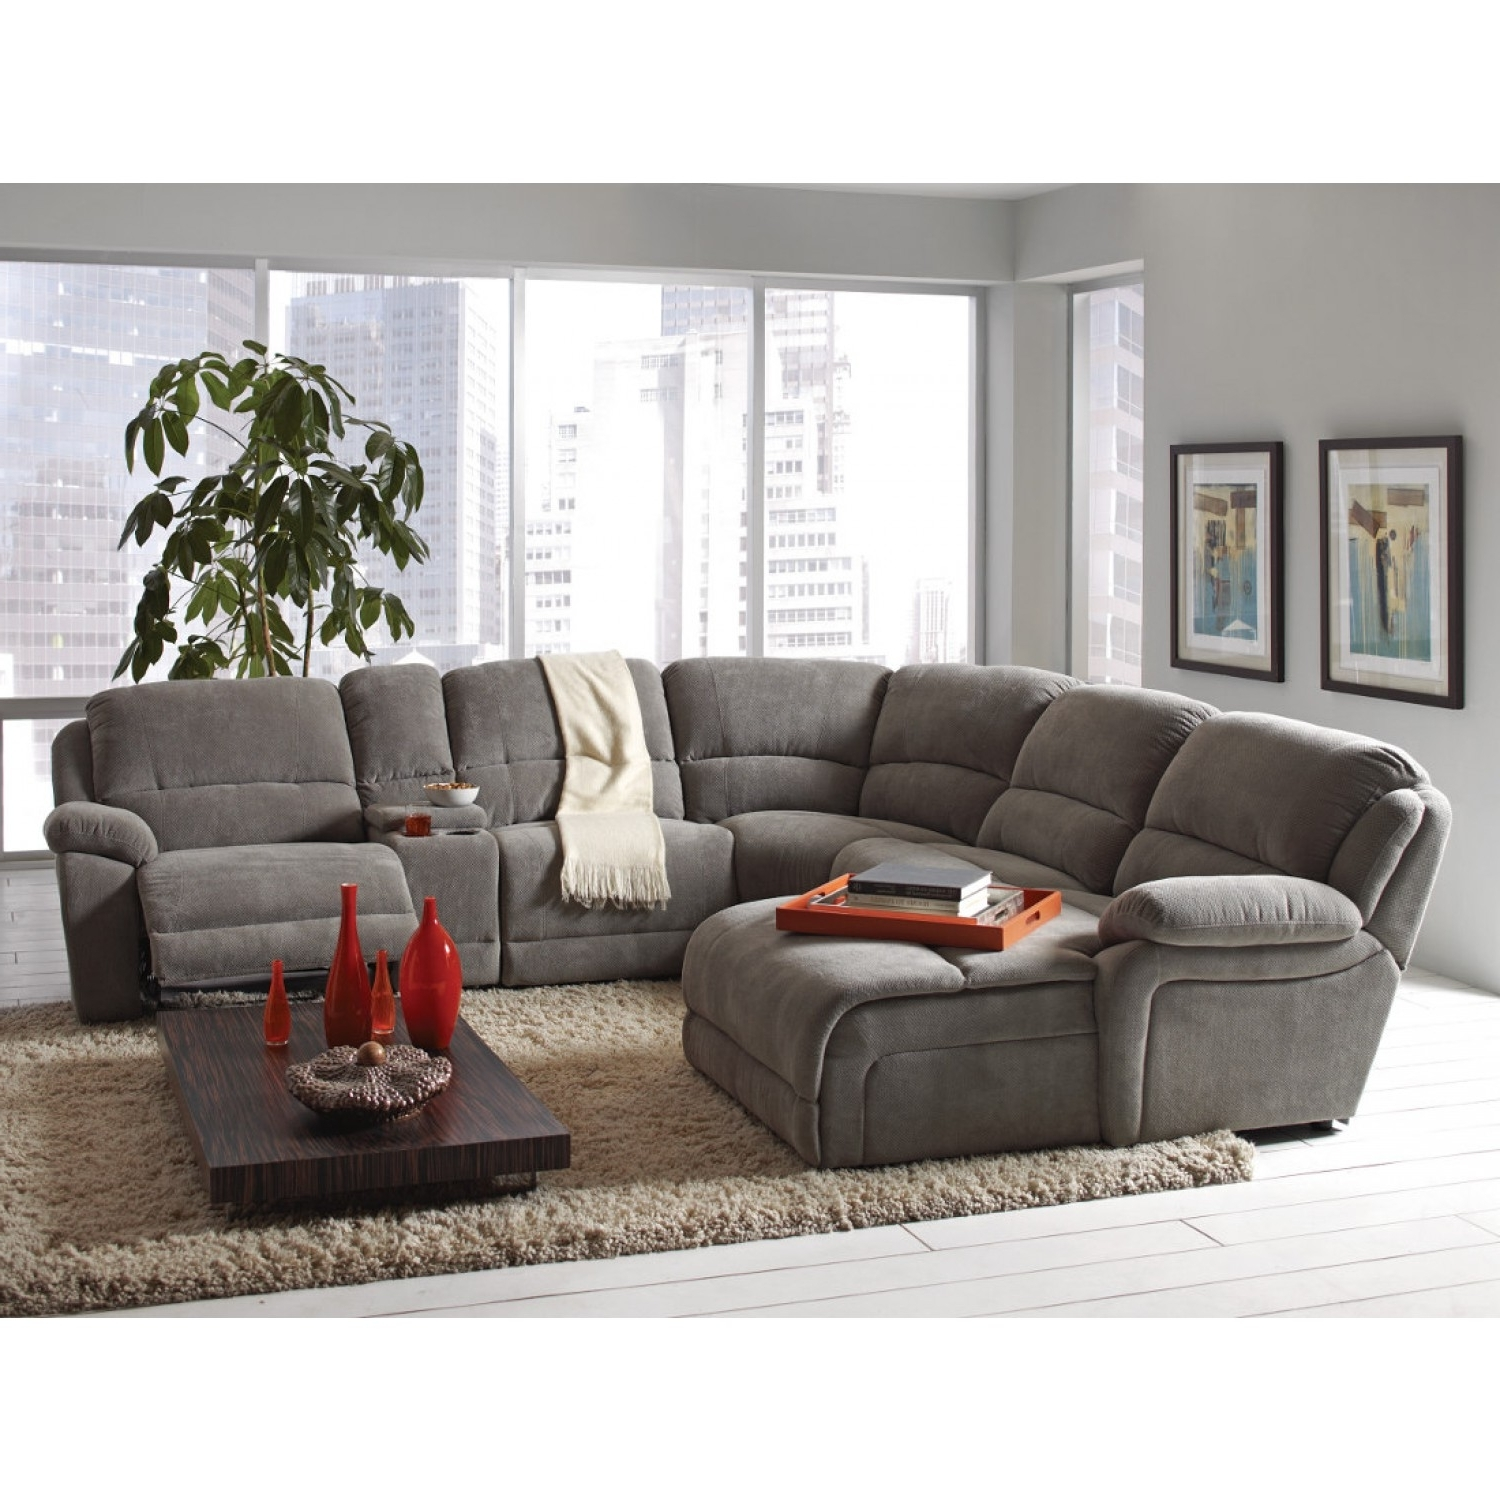 2017 Coaster Mackenzie Silver 6 Piece Reclining Sectional Sofa With Inside Sectional Sofas That Come In Pieces (View 11 of 15)